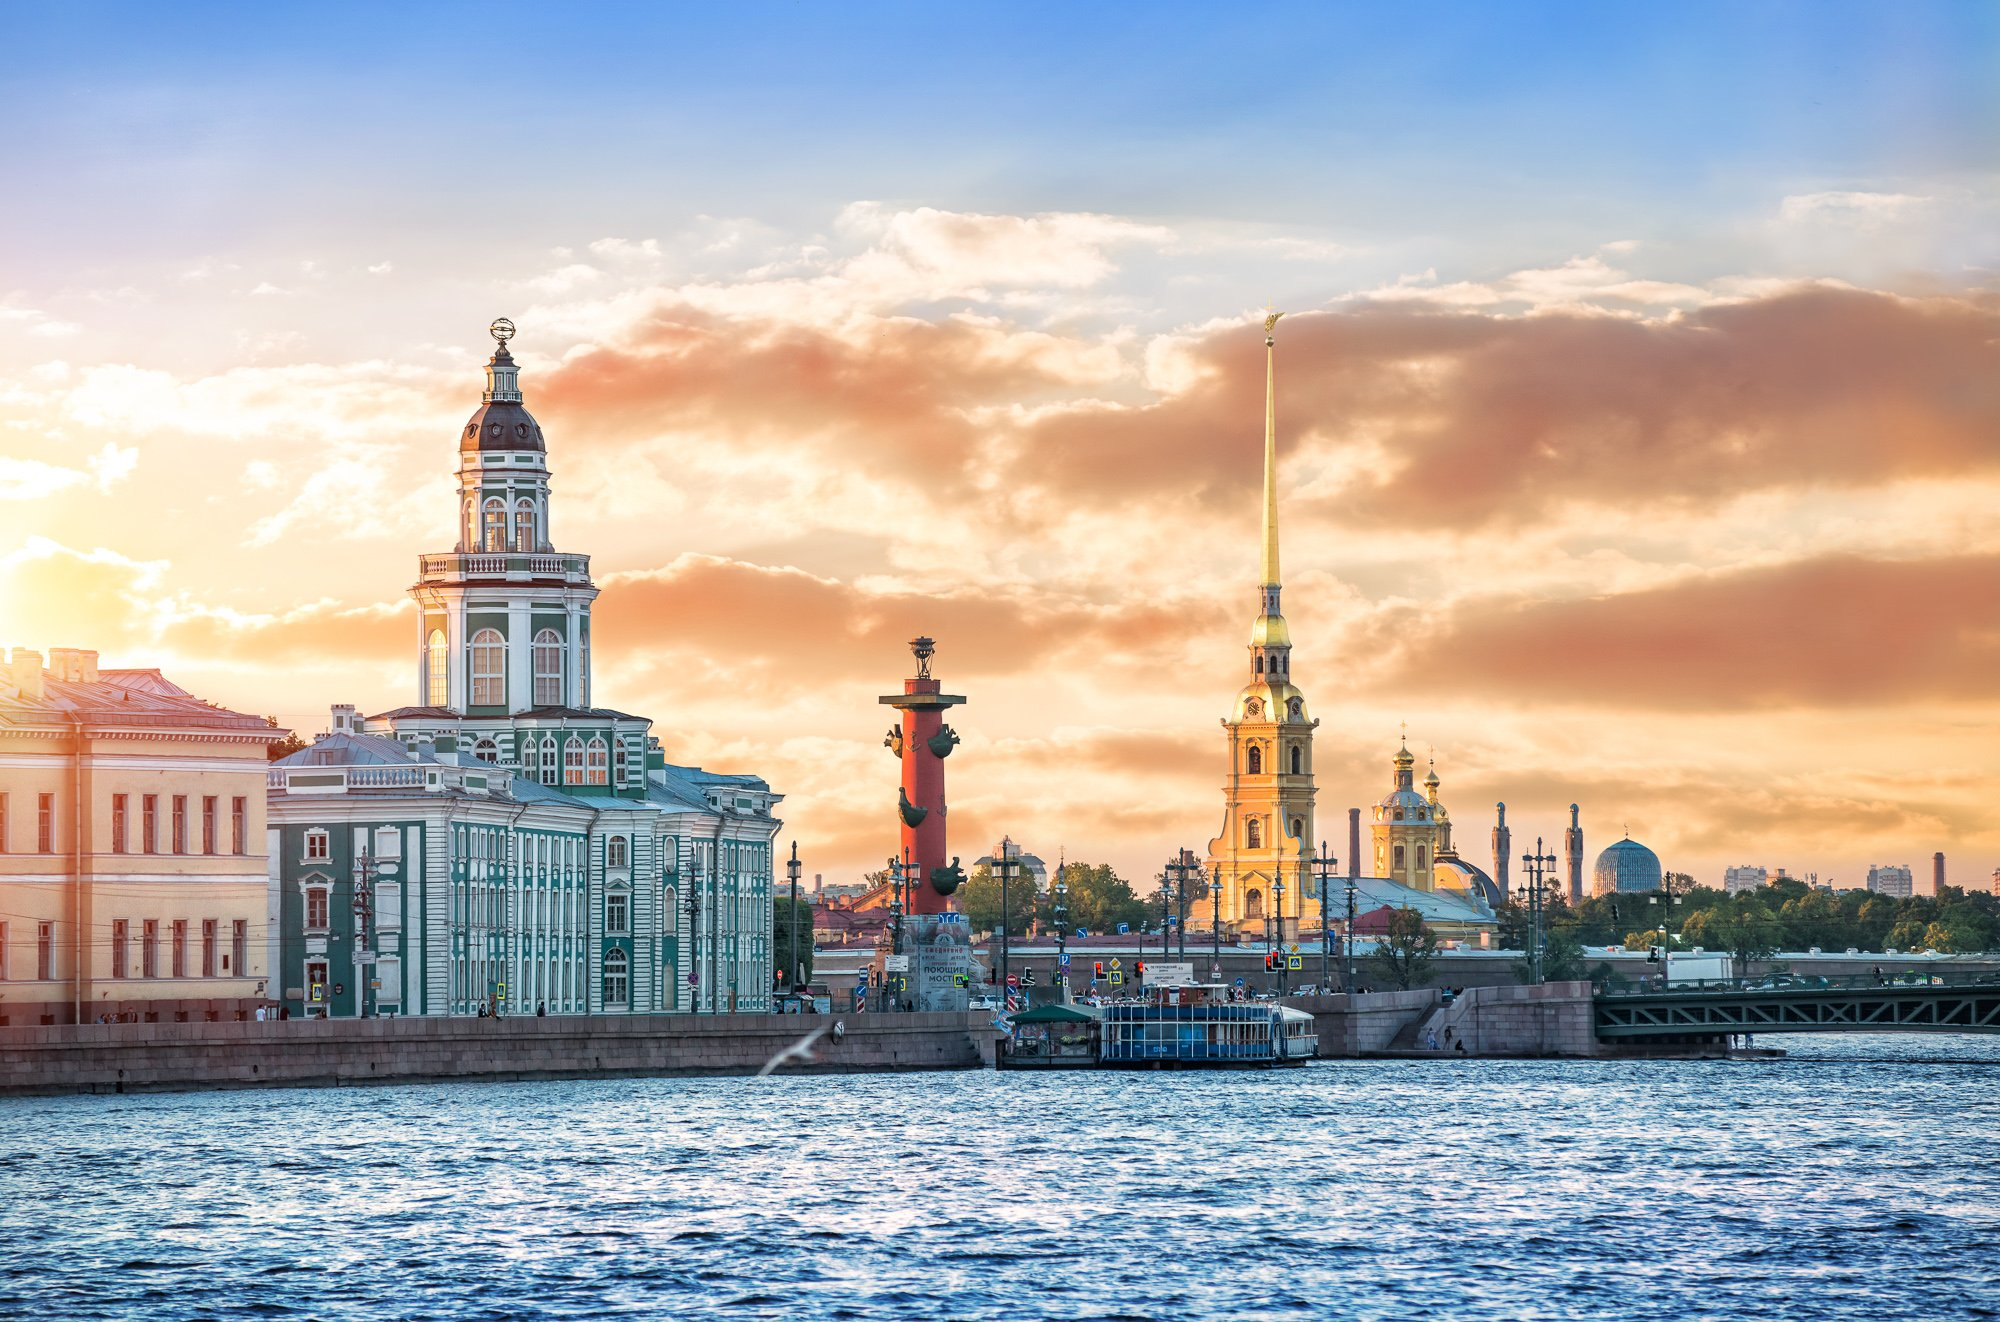 Kunstkammer, Rostral column, Peter and Paul Fortress and the Palace Bridge across the Neva River in St. Petersburg in the rays of the setting sun